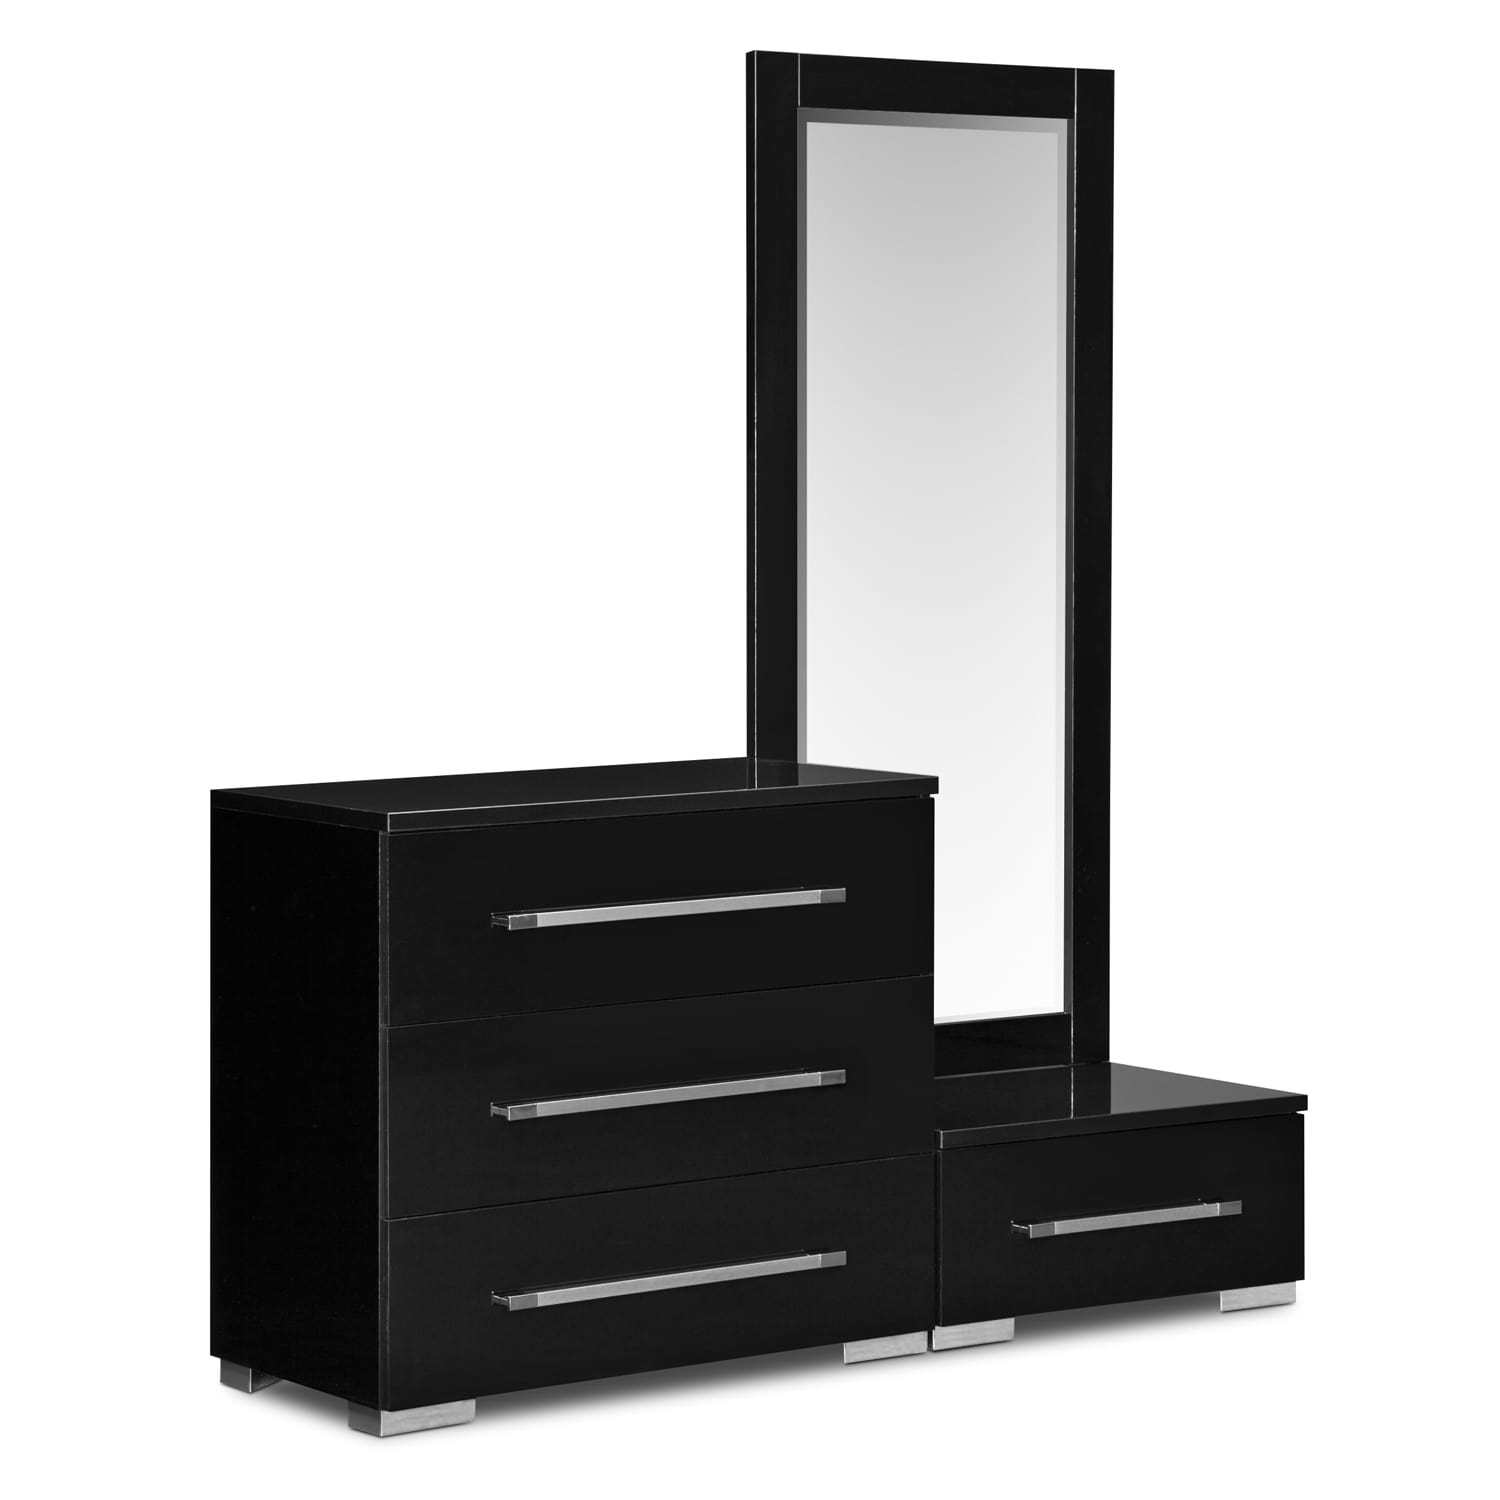 Dimora Dressing Dresser and Mirror with Step - Black